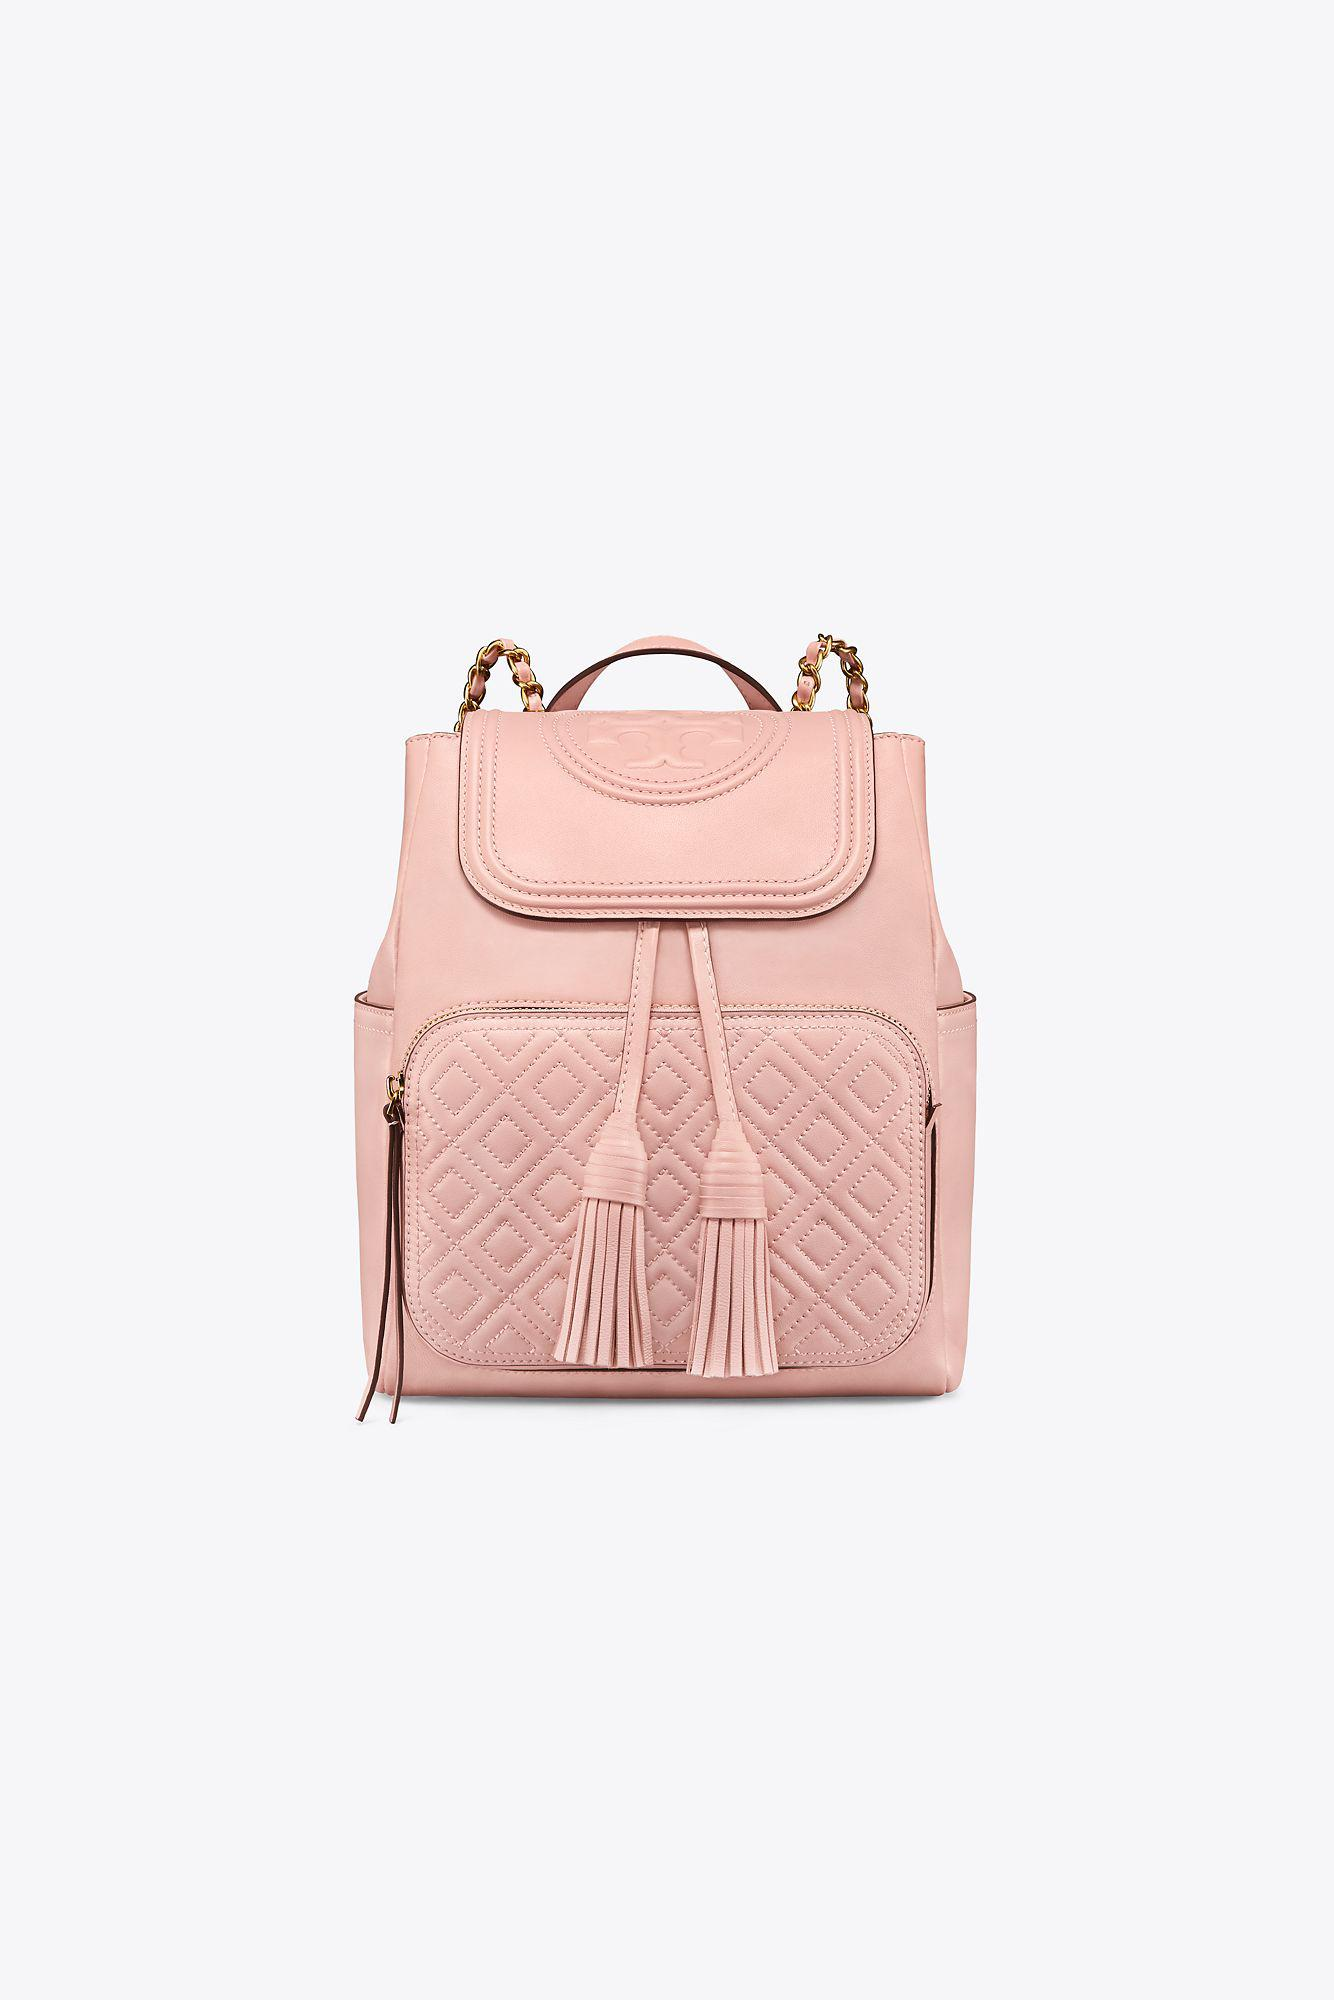 abbb4af6b3ee Lyst - Tory Burch Fleming Backpack in Pink - Save 35%